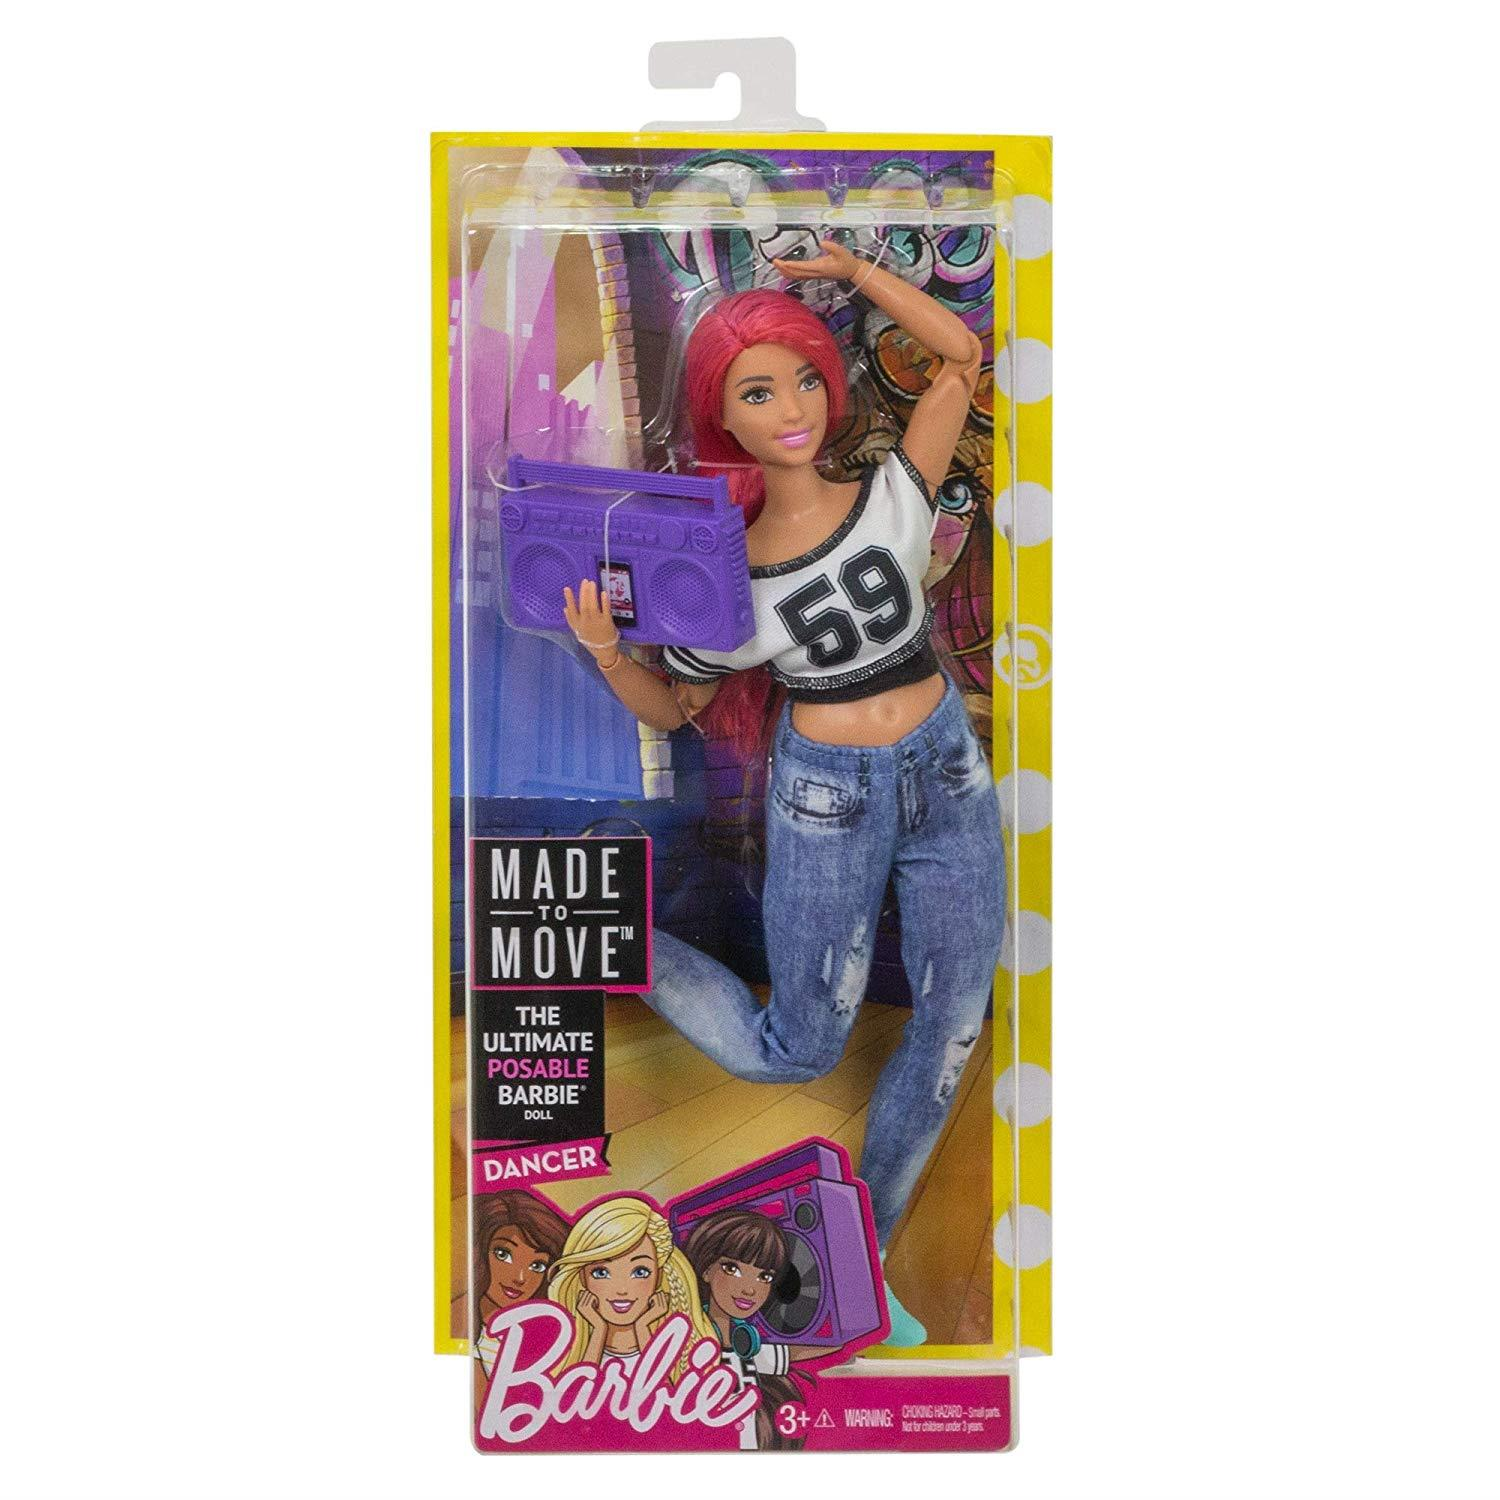 Barbie-Made-to-Move-Collectable-Careers-Fashion-Dolls thumbnail 13